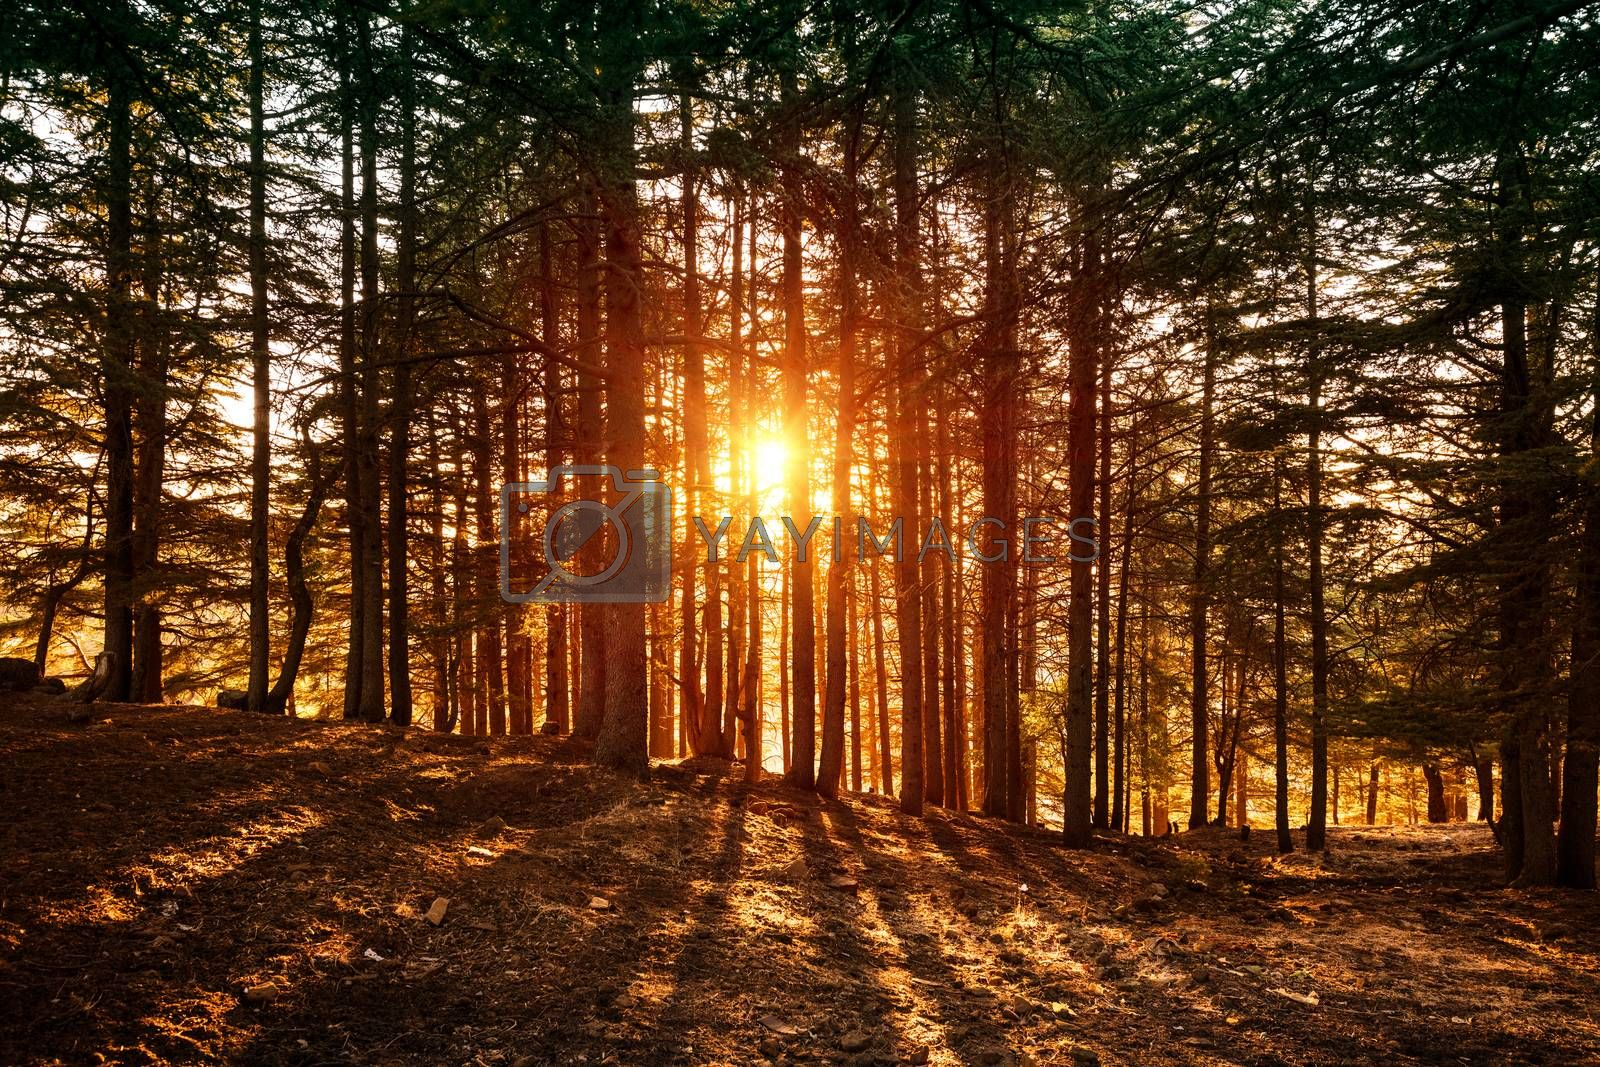 Beautiful forest landscape, bright sunlight makes its way through the trunks of pines, amazing sunset, beauty of wild nature